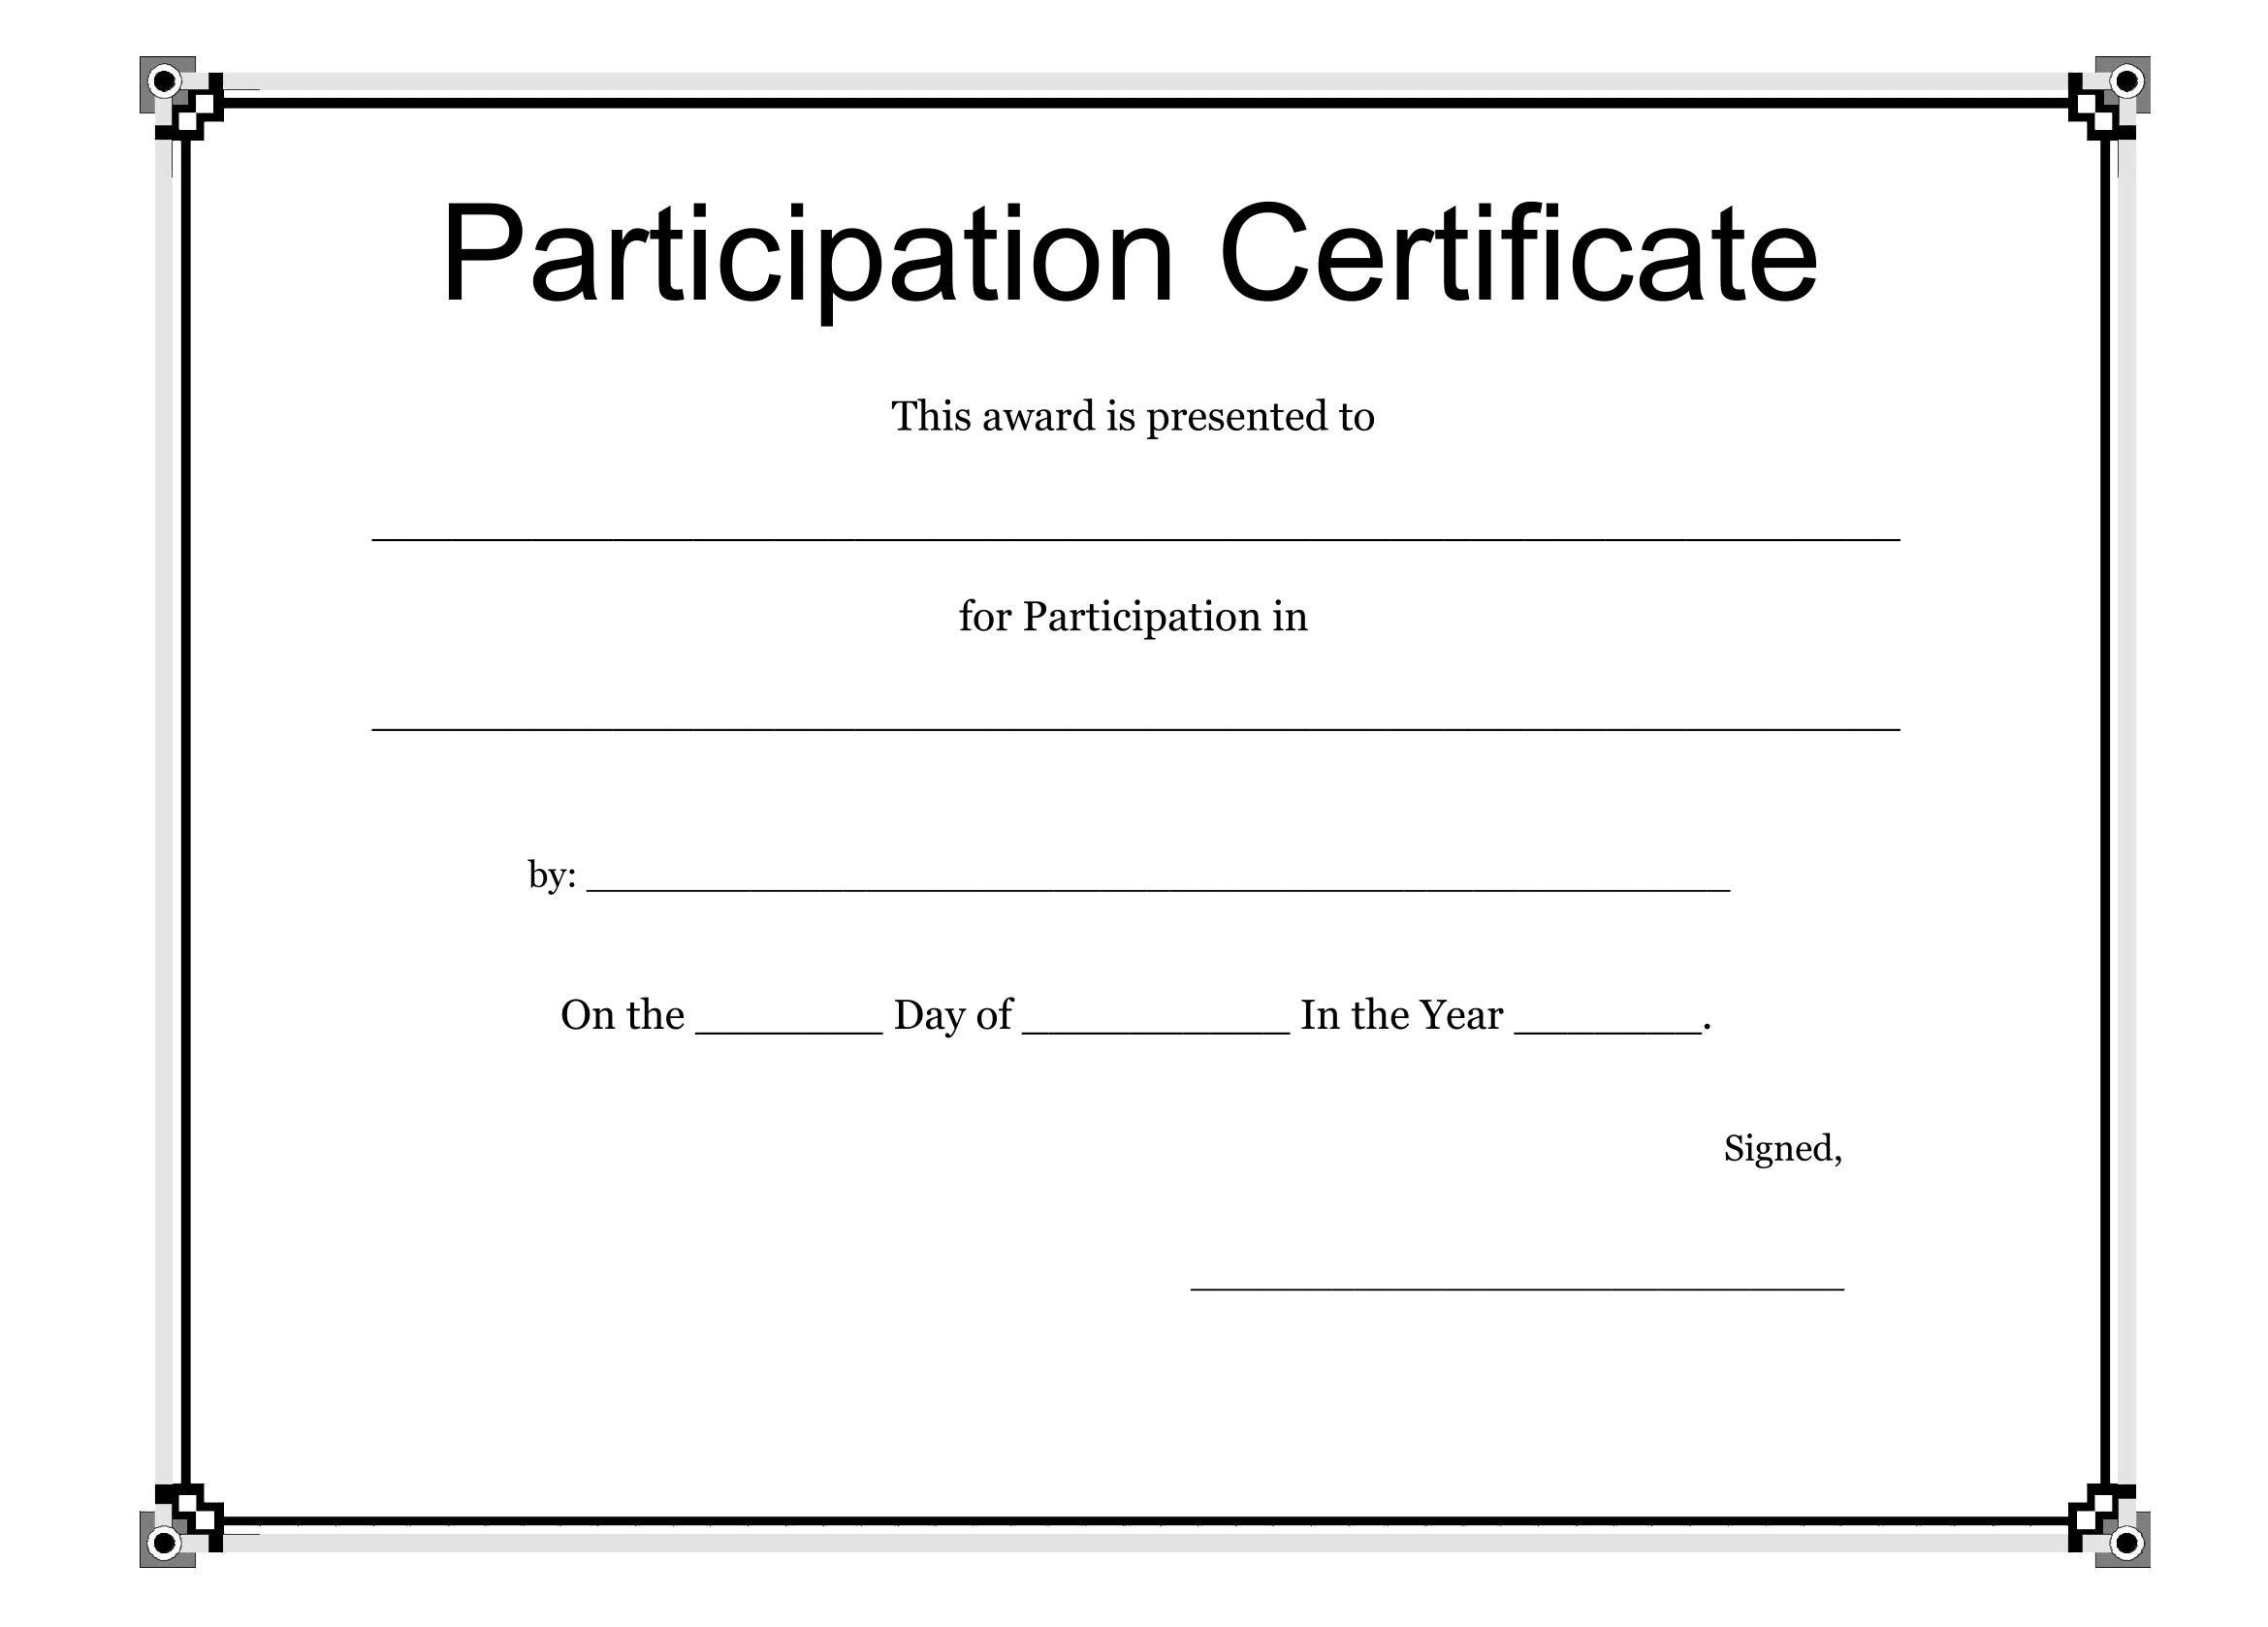 Participation Certificate Template U2013 FREE Download  Blank Certificate Of Attendance